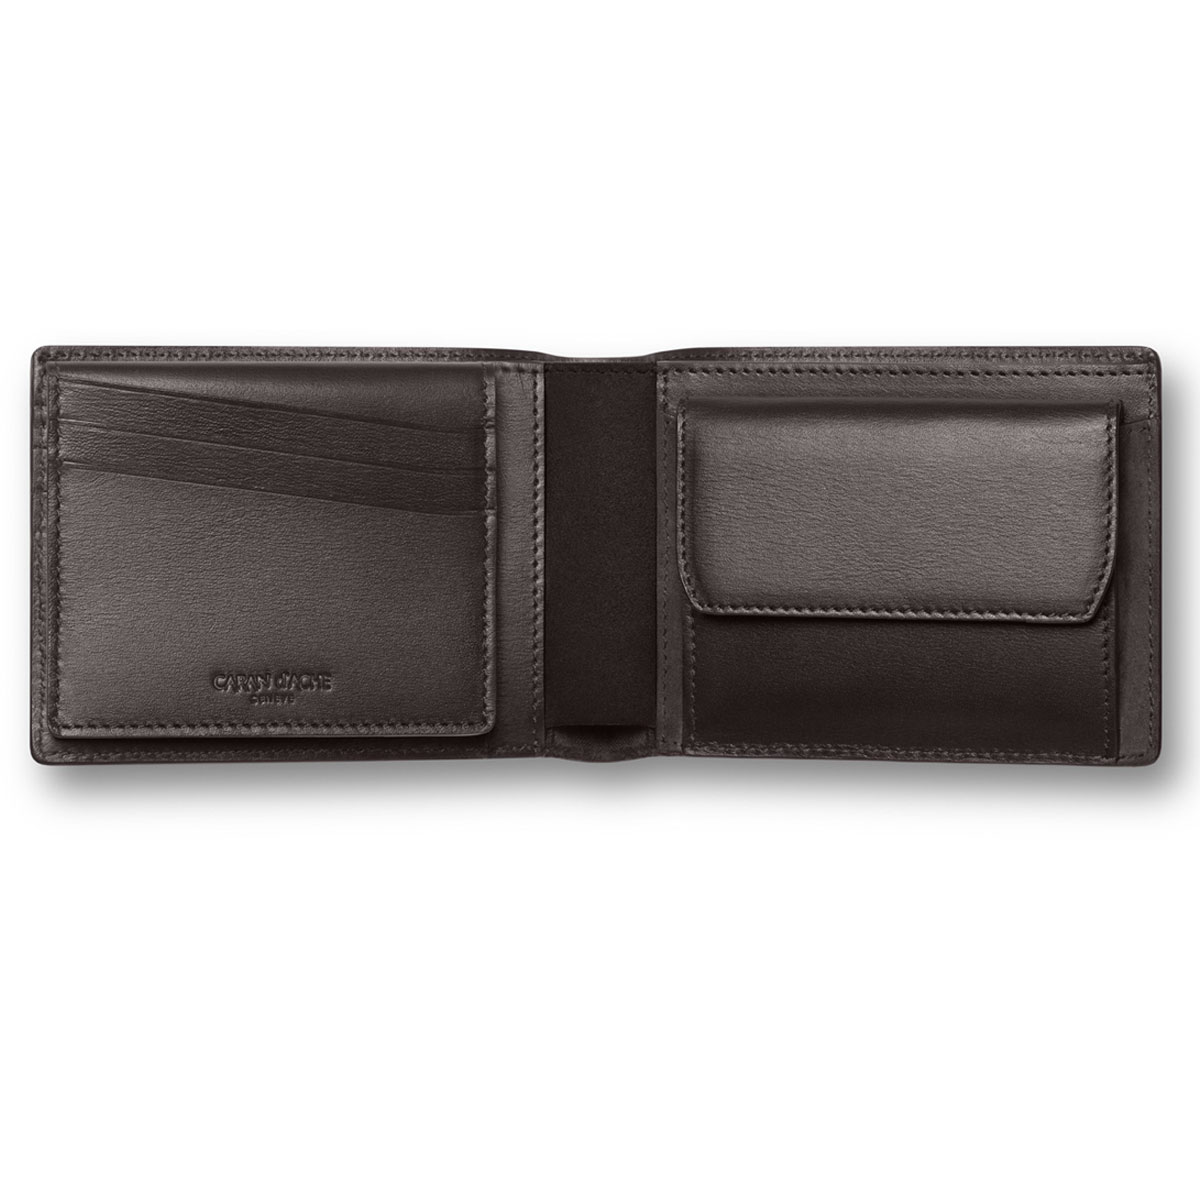 Caran d'Ache Haute Maroquinerie Ebony Leather 14-Credit Card Wallet